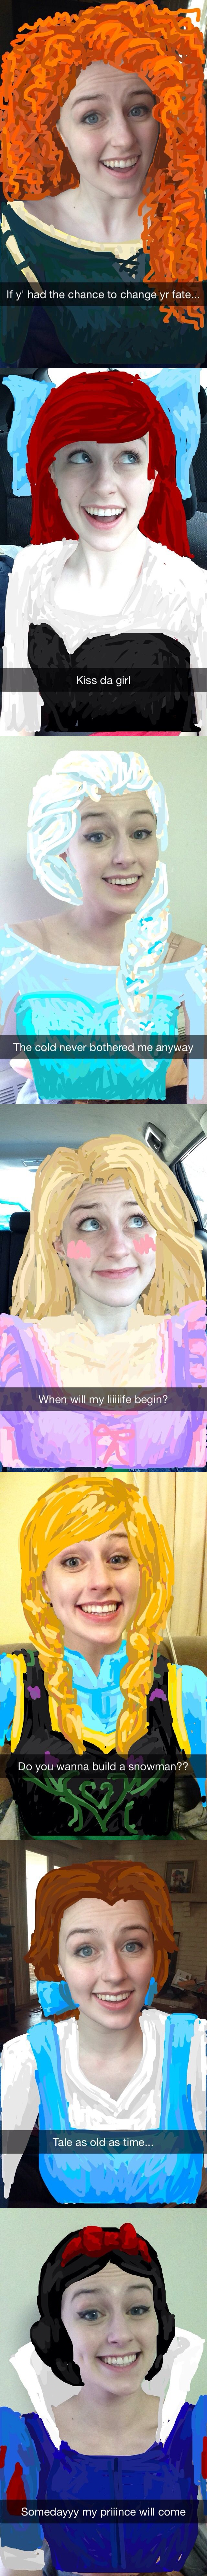 HOW IS THIS POSSIBLE. DOES SHE DO ANYTHING ELSE WITH HER LIFE?? Disney Princess Snapchats